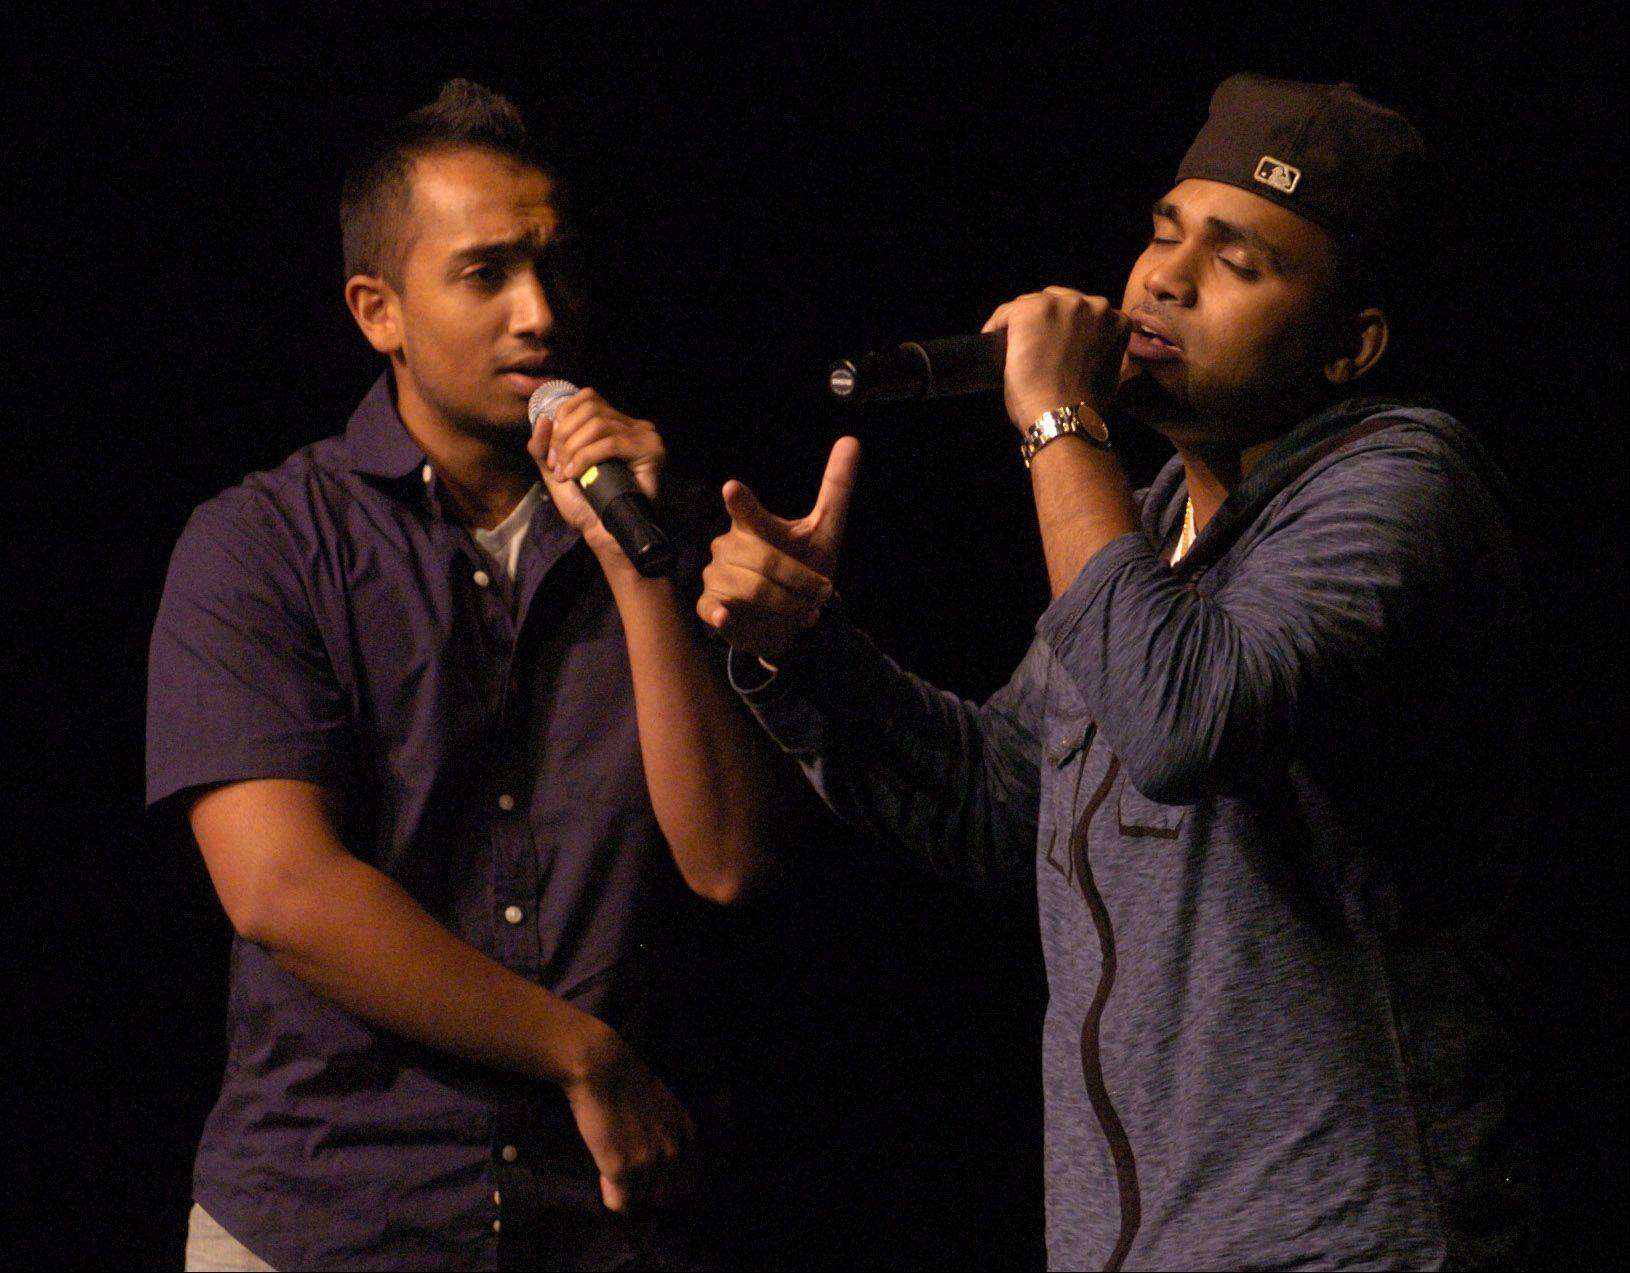 Shawn Kurian of Wheeling, left, and Sanu John of Skokie doing their two-man a cappella during Suburban Chicago's Got Talent at the Metropolis Performing Arts Centre.